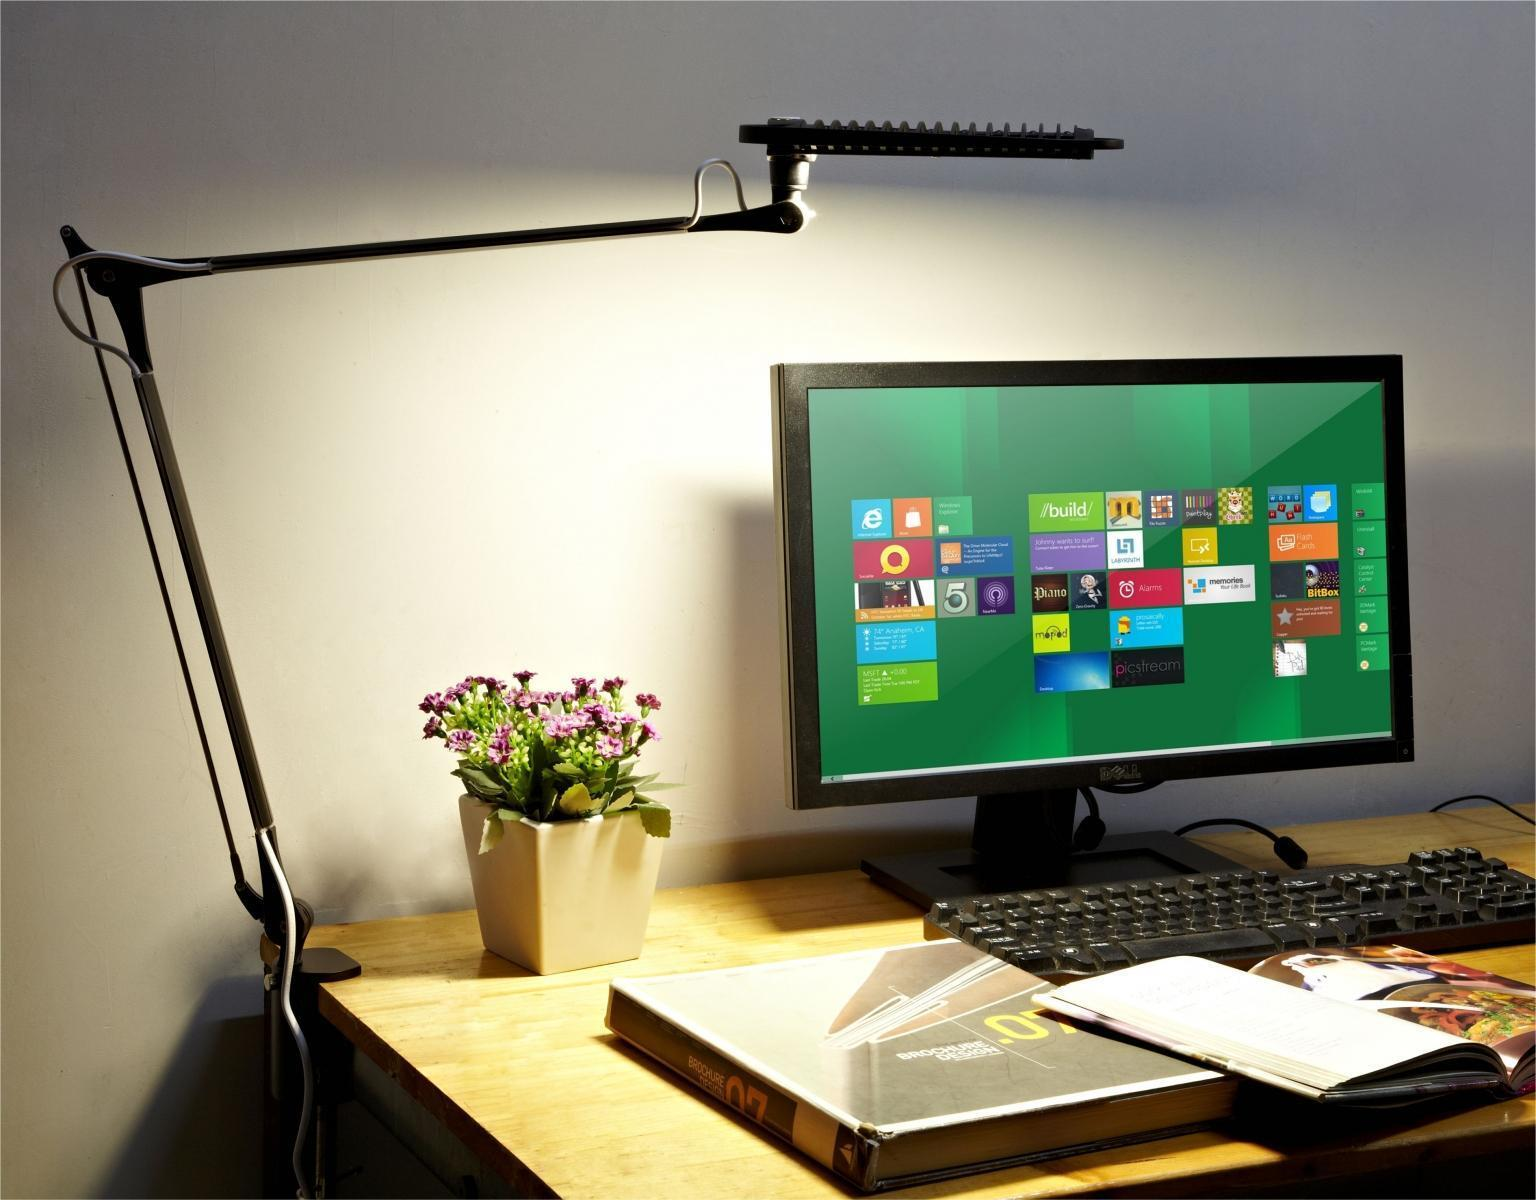 Light New Led Control Eye Dimmable Office Desk Table With Touch Care Lamp UpqMVzGS